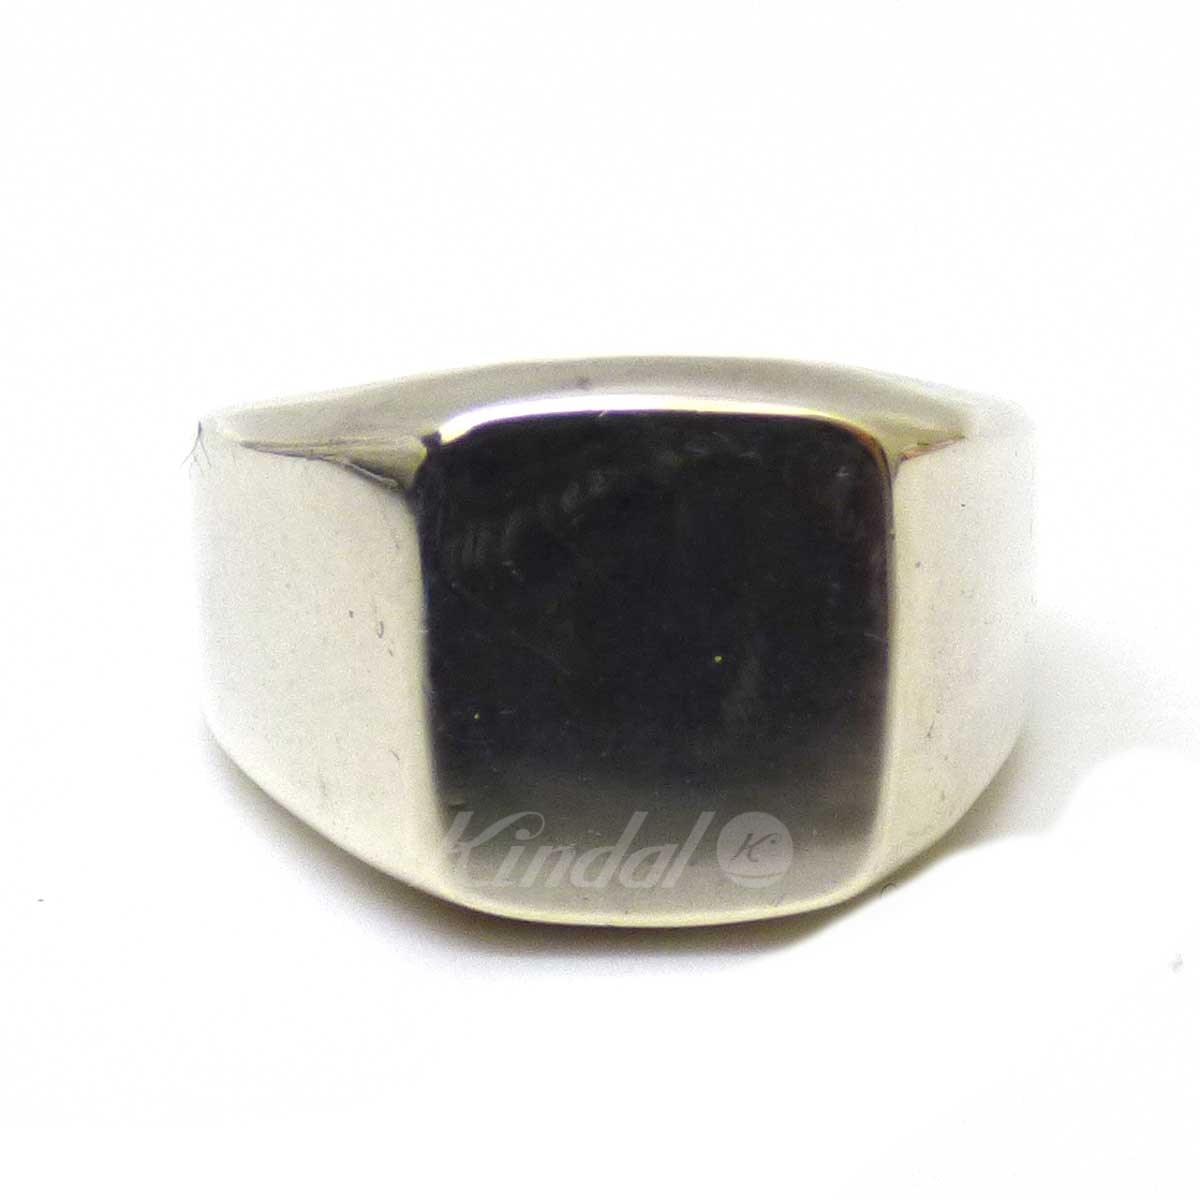 【中古】Rags McGREGOR RINKY RING SILVER925 endコラボ指輪 【送料無料】 【184521】 【KIND1551】